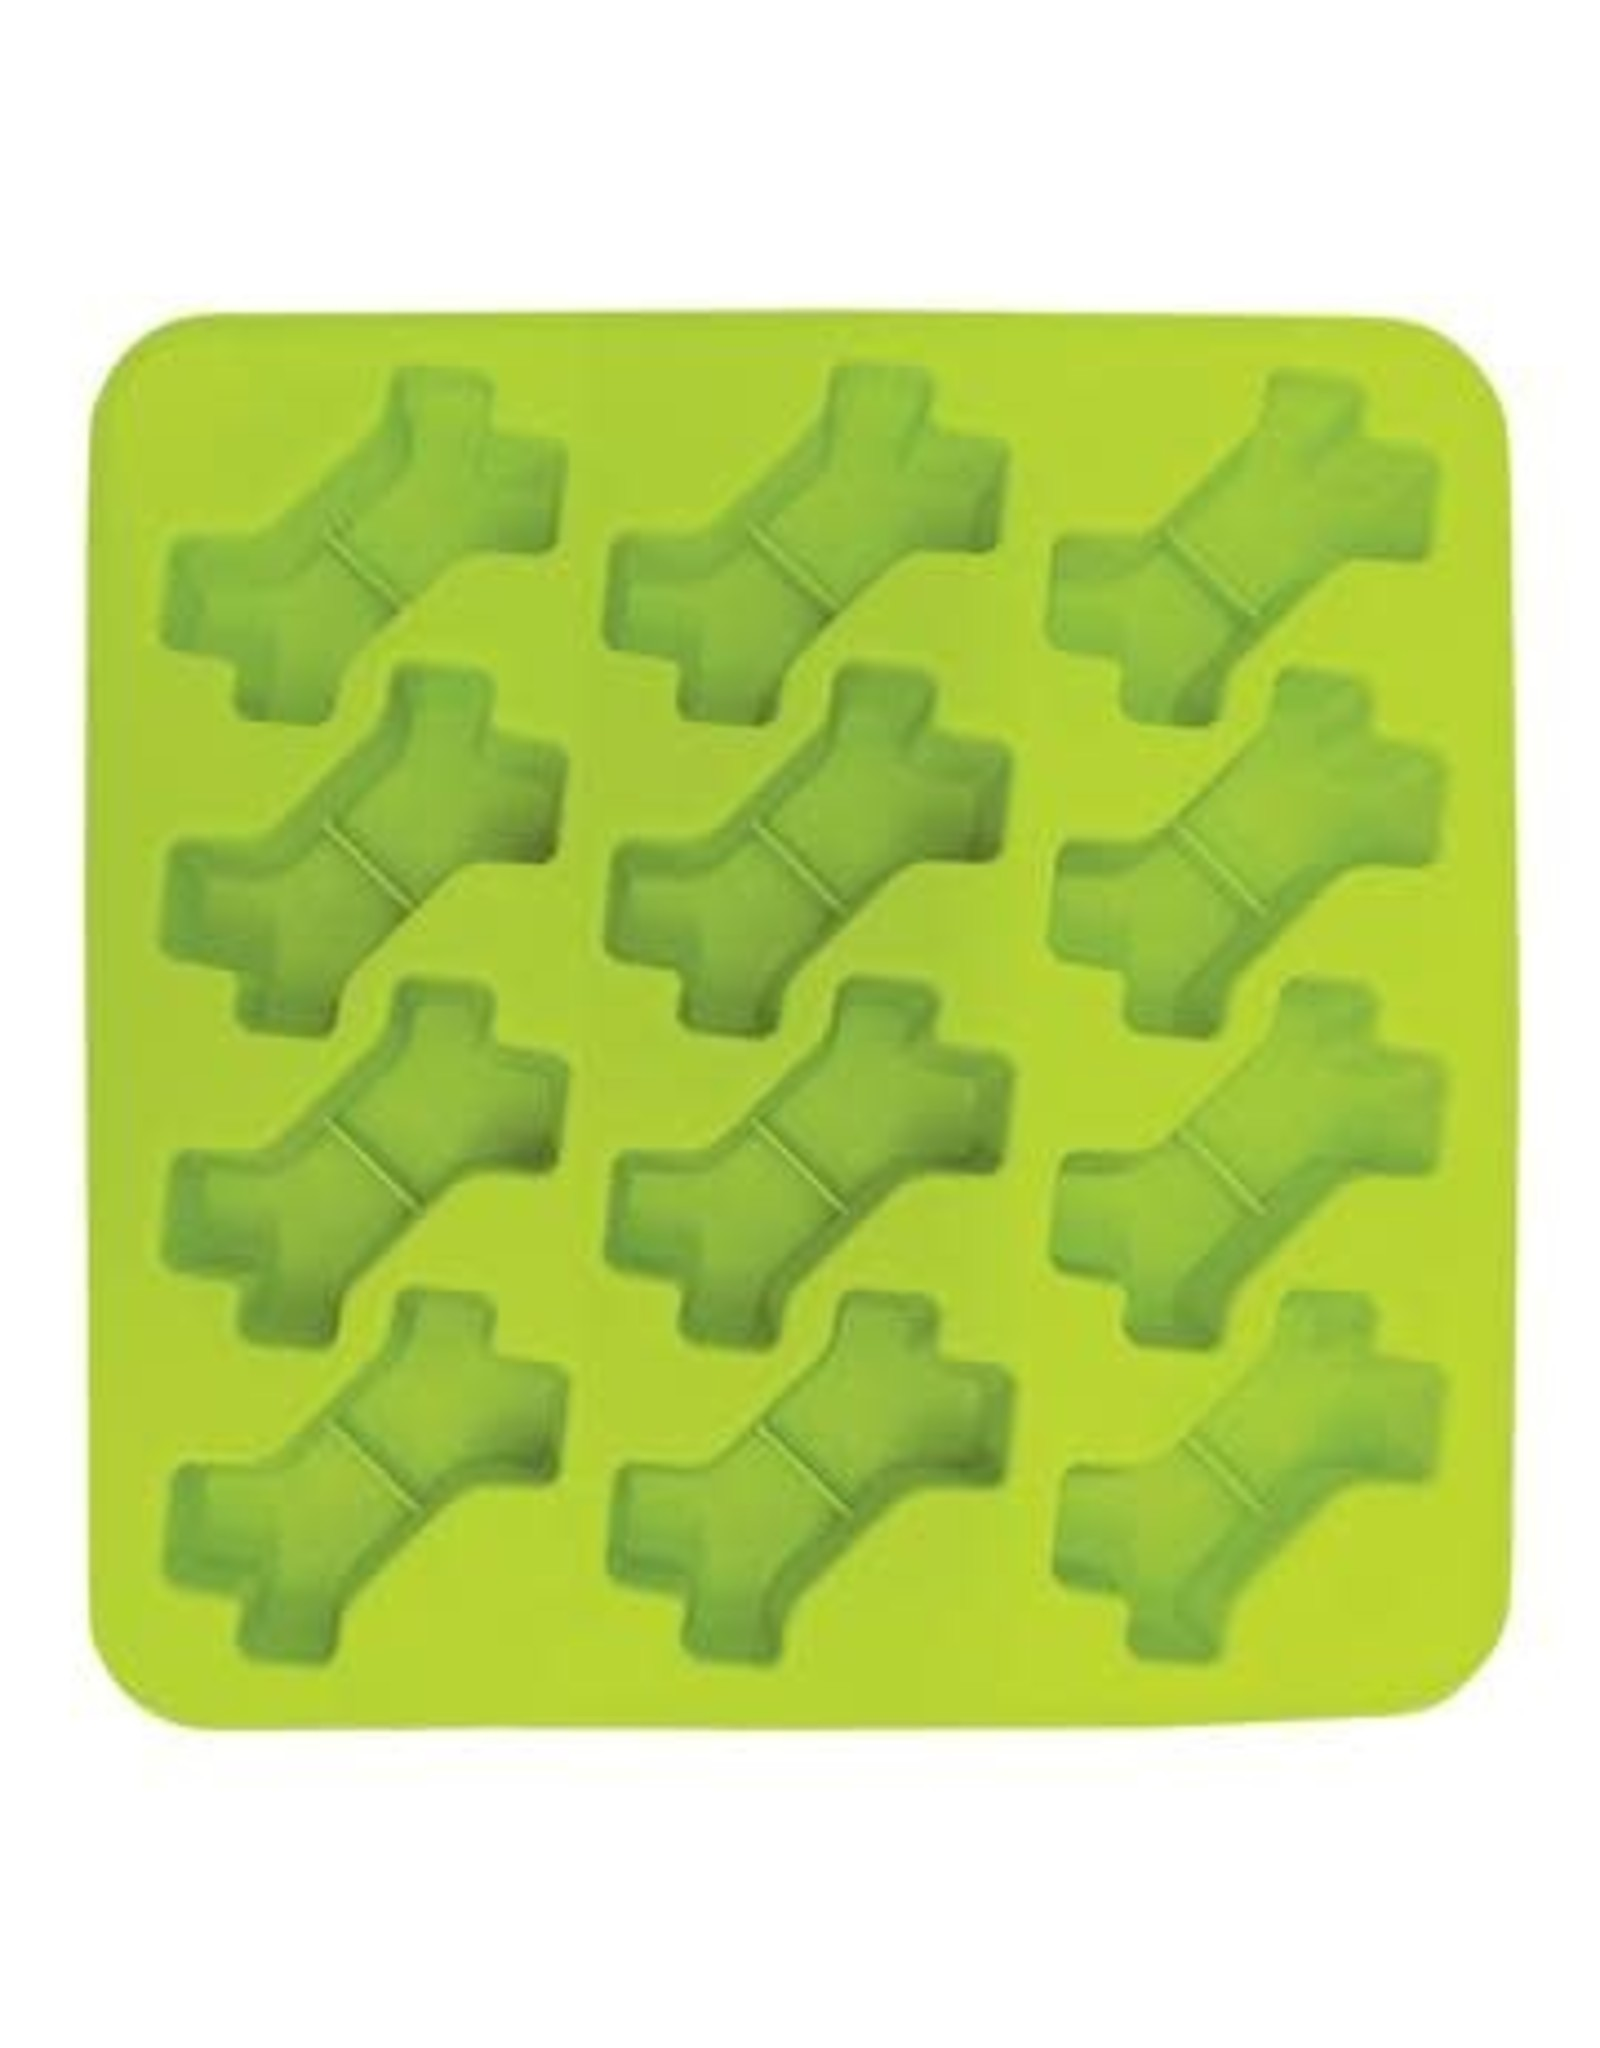 Messy Mutts Messy Mutts Silicone Bake and Freeze Treat Maker 2 Pack - 12 x 1oz Bones